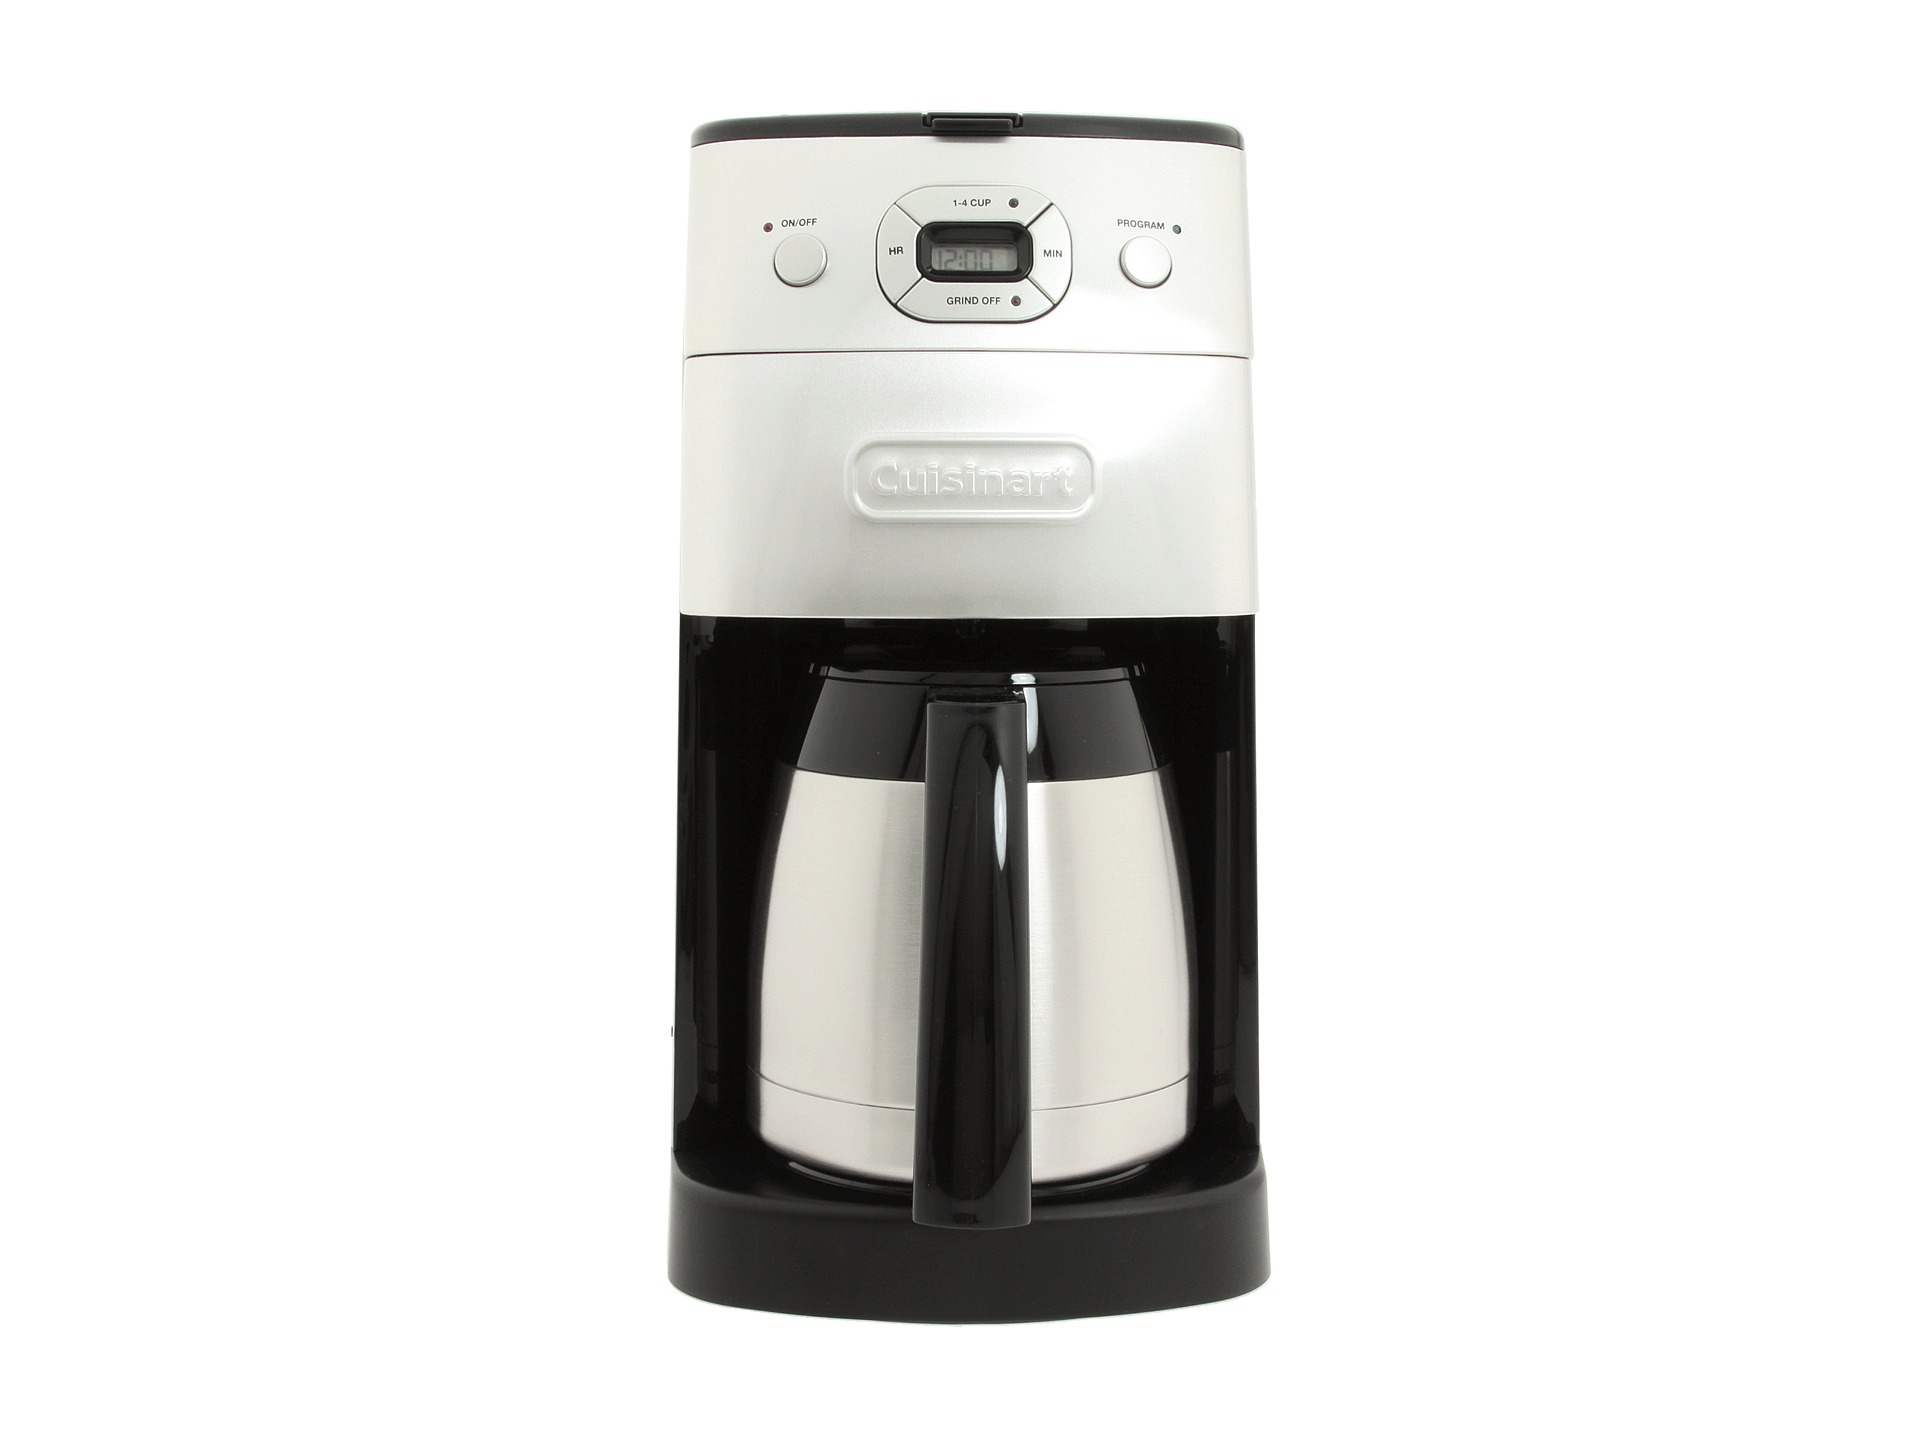 Cuisinart Coffee Maker With Grinder Leaking : Cuisinart Dgb 650bc Grind Brew Thermal 10 Cup Coffee Maker Shipped Free at Zappos